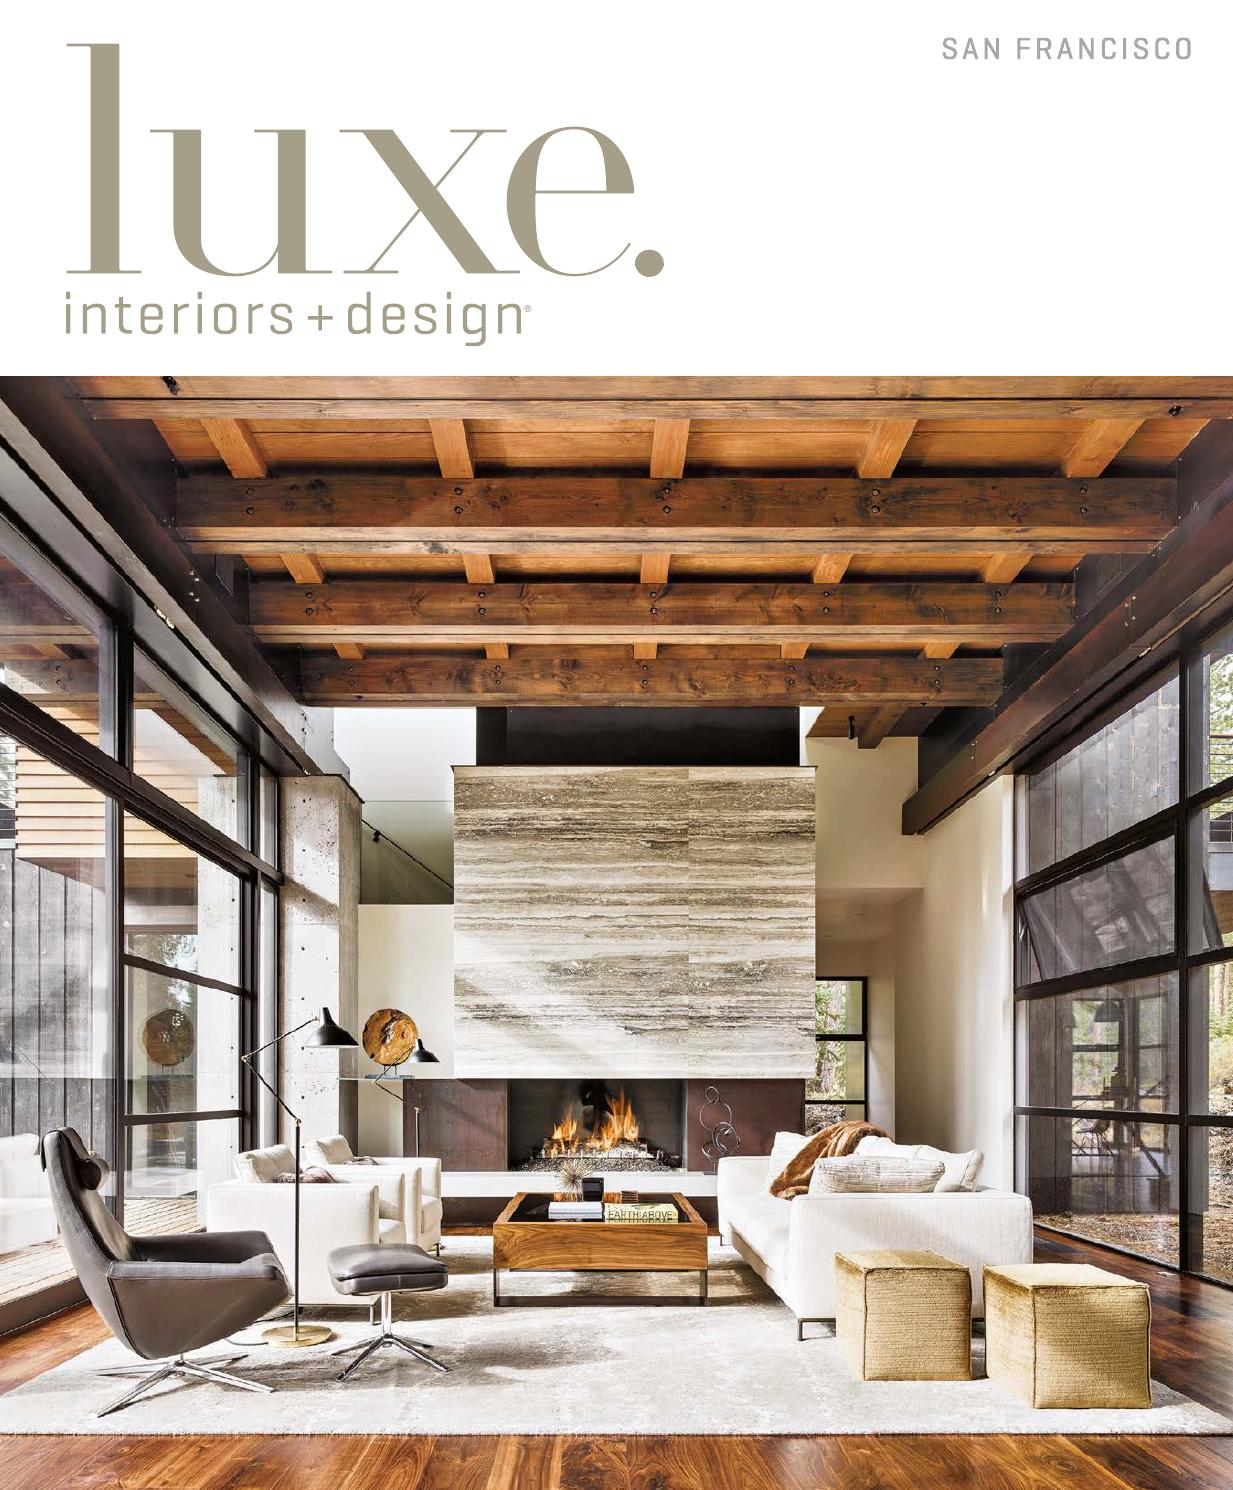 Luxe Magazine September 2015 San Francisco By Sandow Media LLC